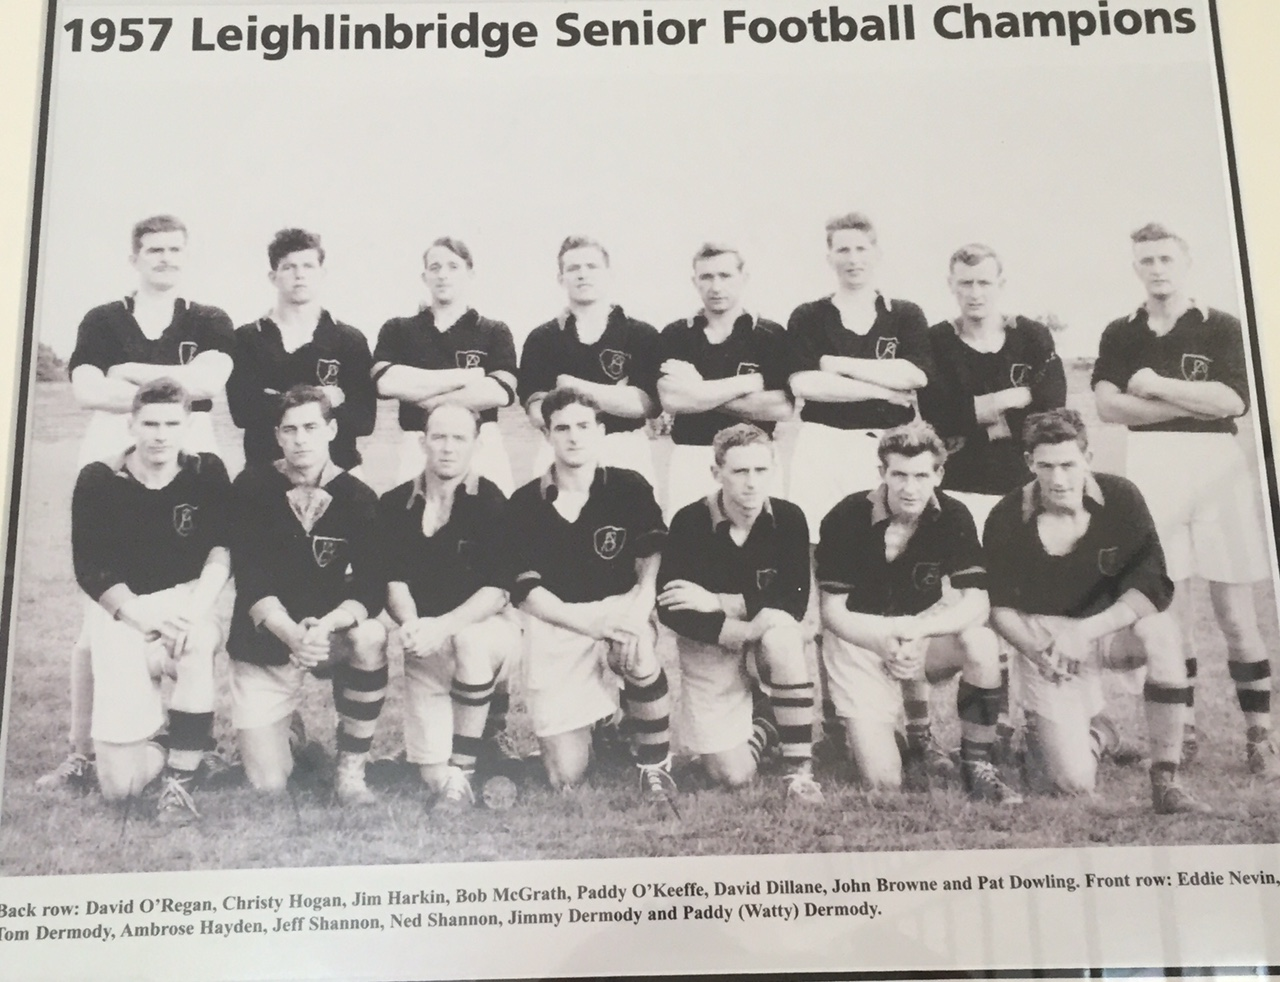 Archive slot: 1957 Footballers of Leighlinbridge